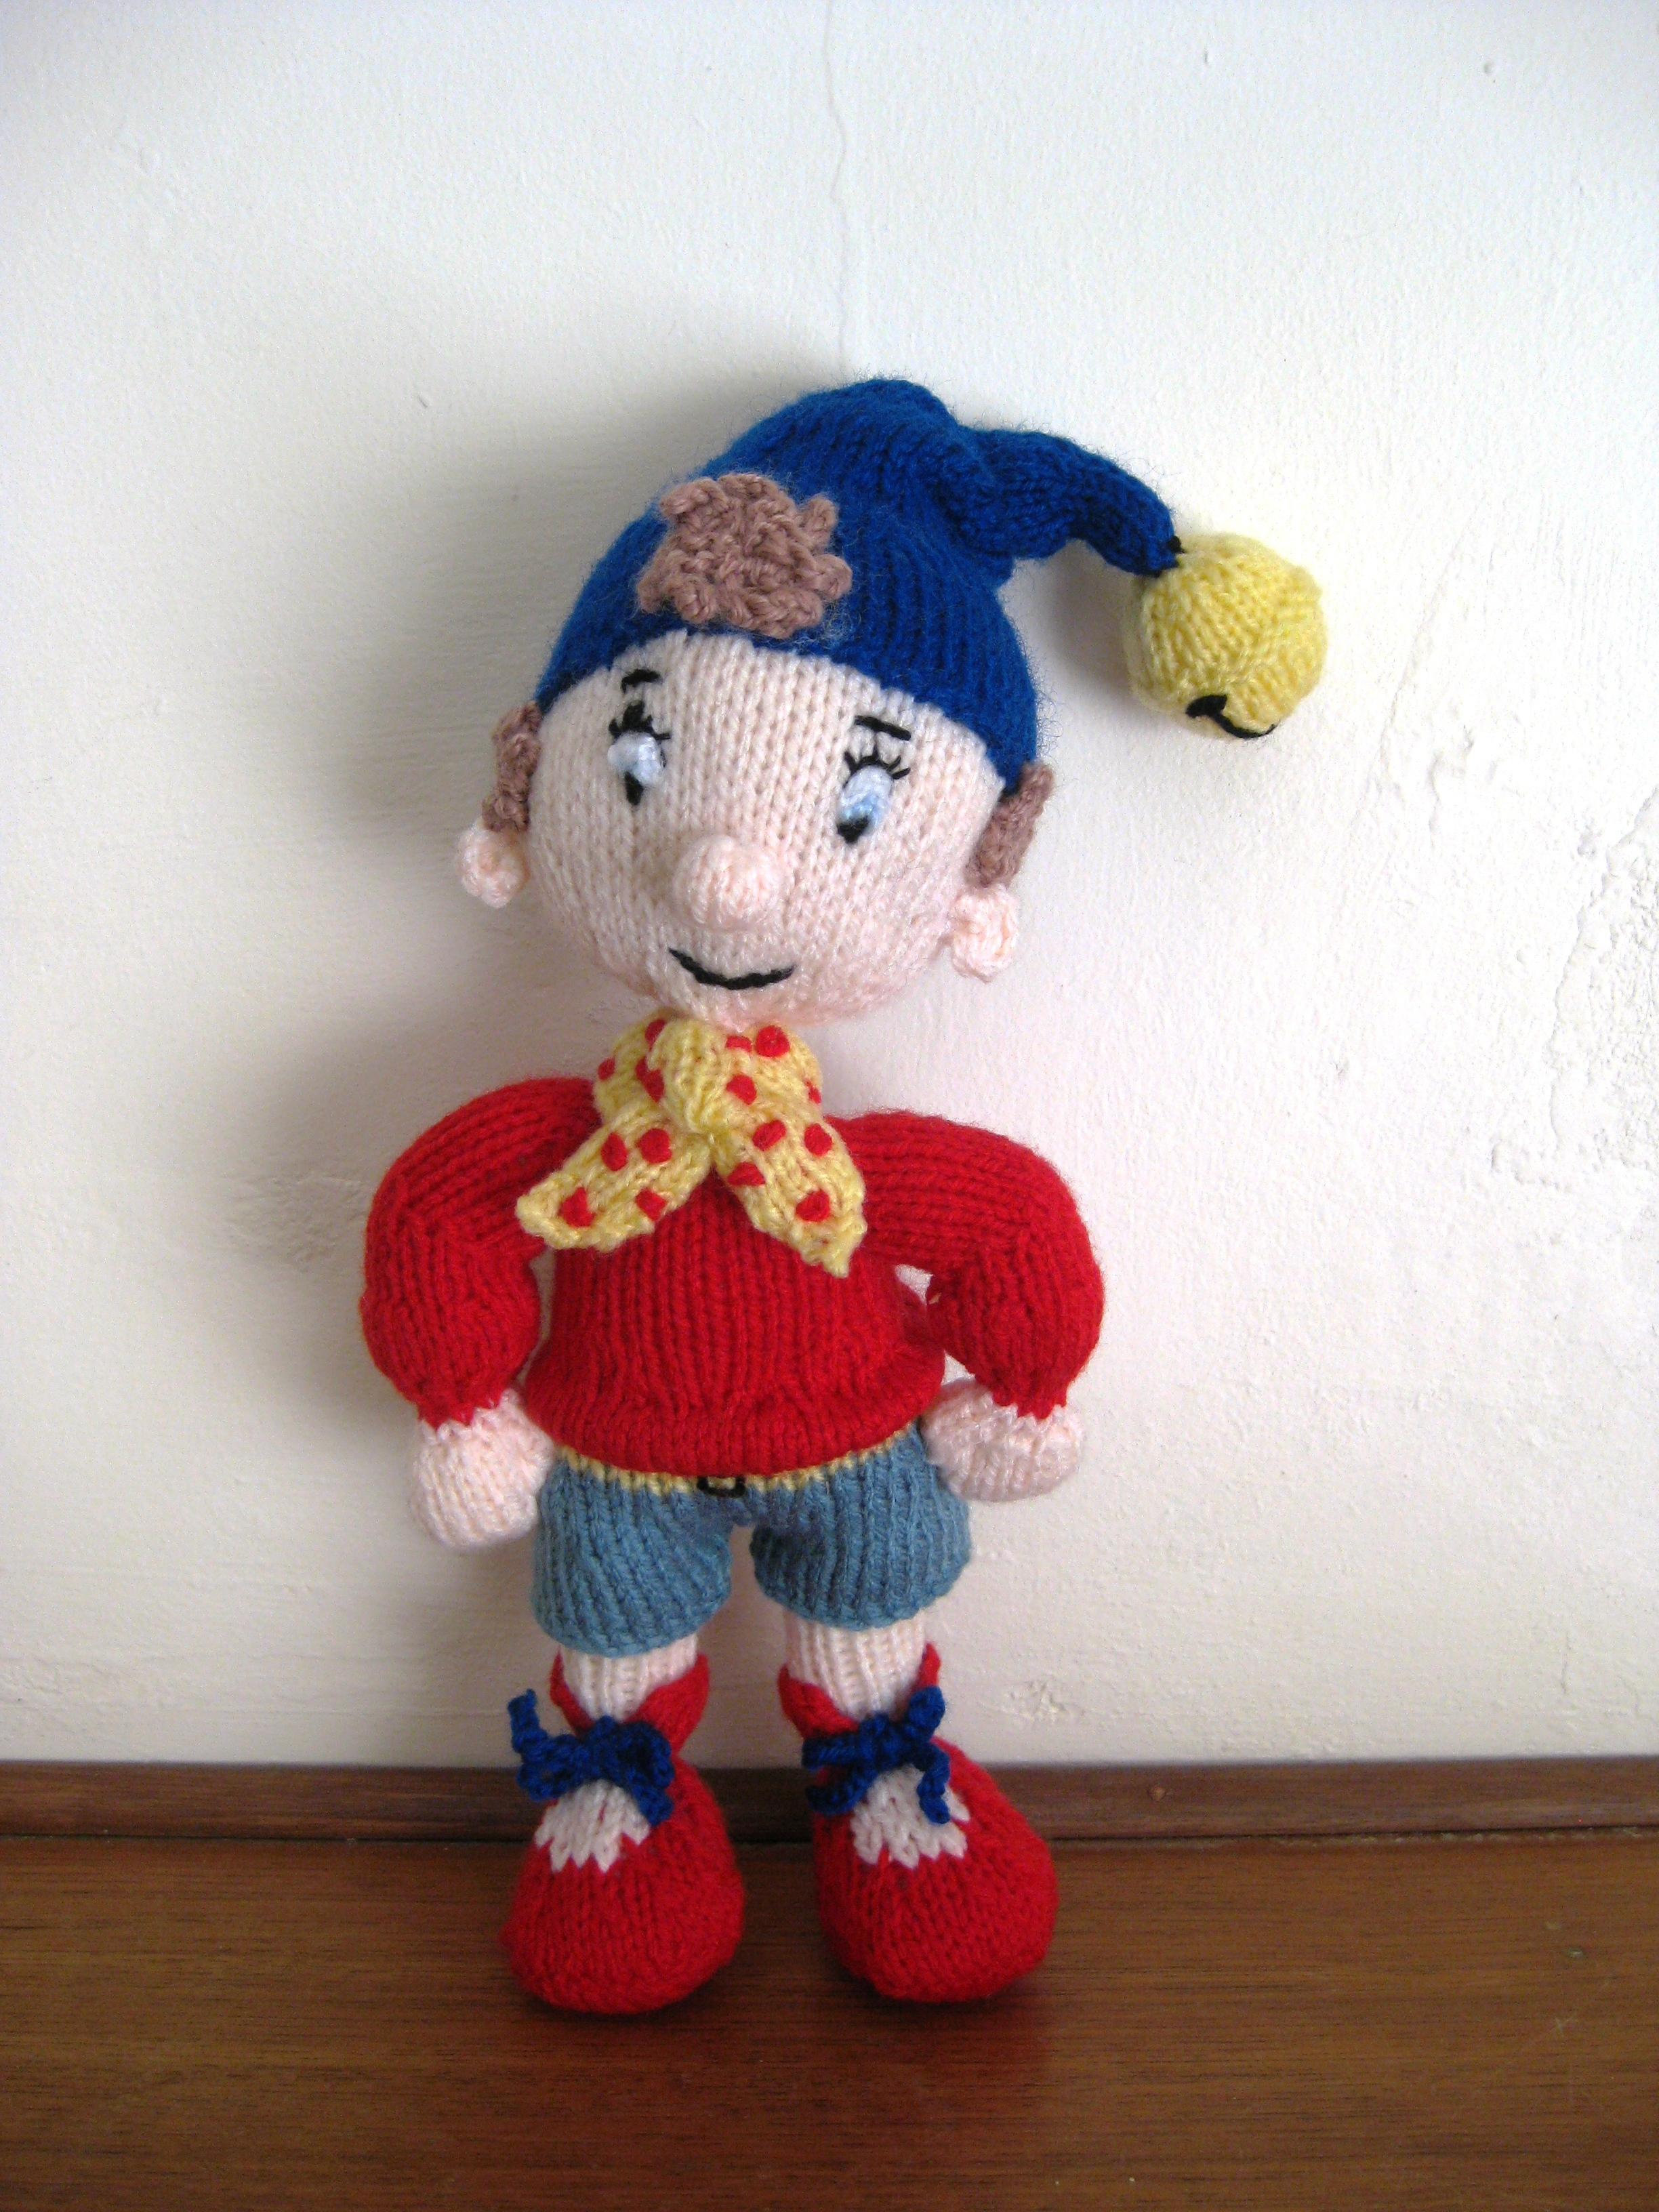 Noddy Doll Knitting Pattern : Noddy and Big Ears knitting project by Lynne H LoveKnitting